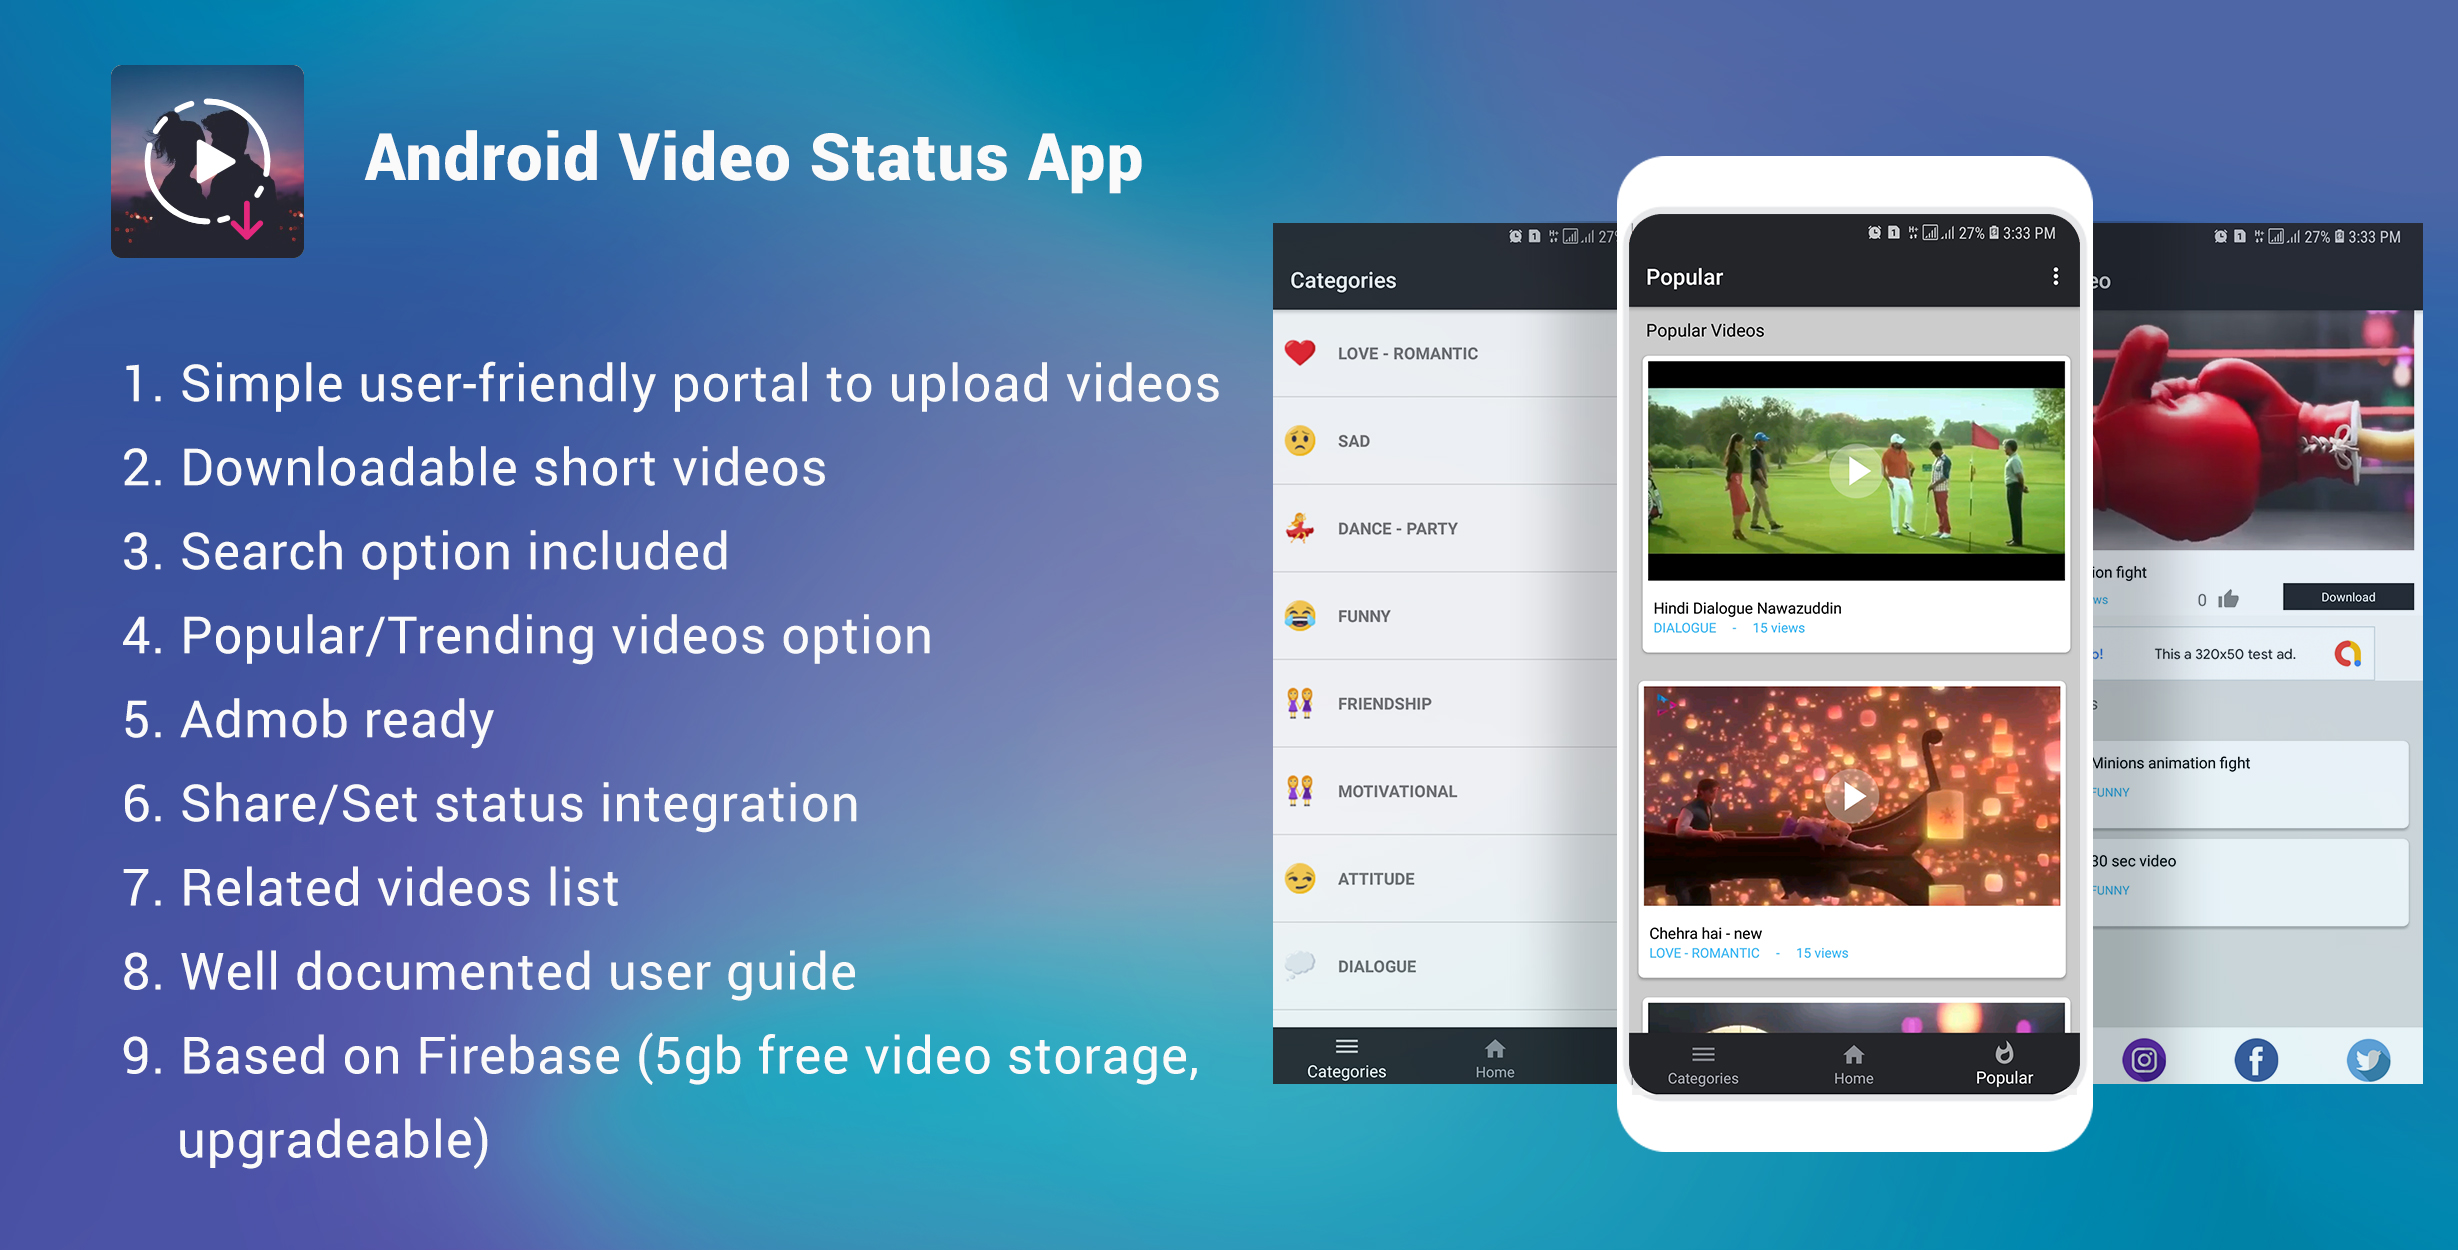 Android Video Status app + Admob ready